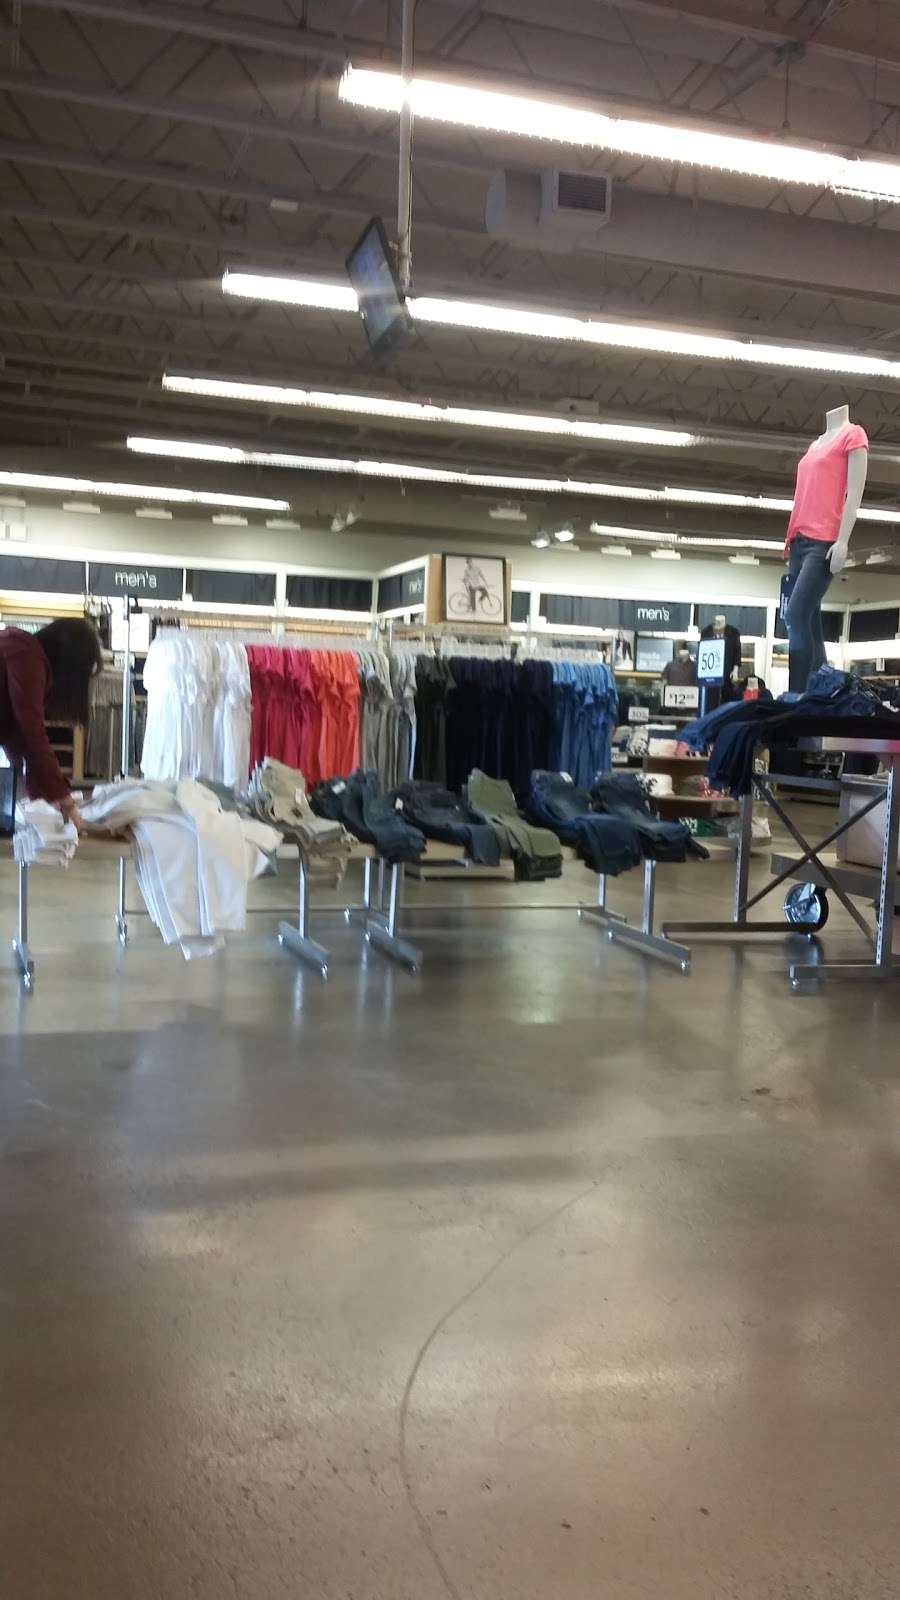 Gap Outlet - clothing store    Photo 8 of 10   Address: 17600 Collier Ave, Lake Elsinore, CA 92530, USA   Phone: (951) 245-6003